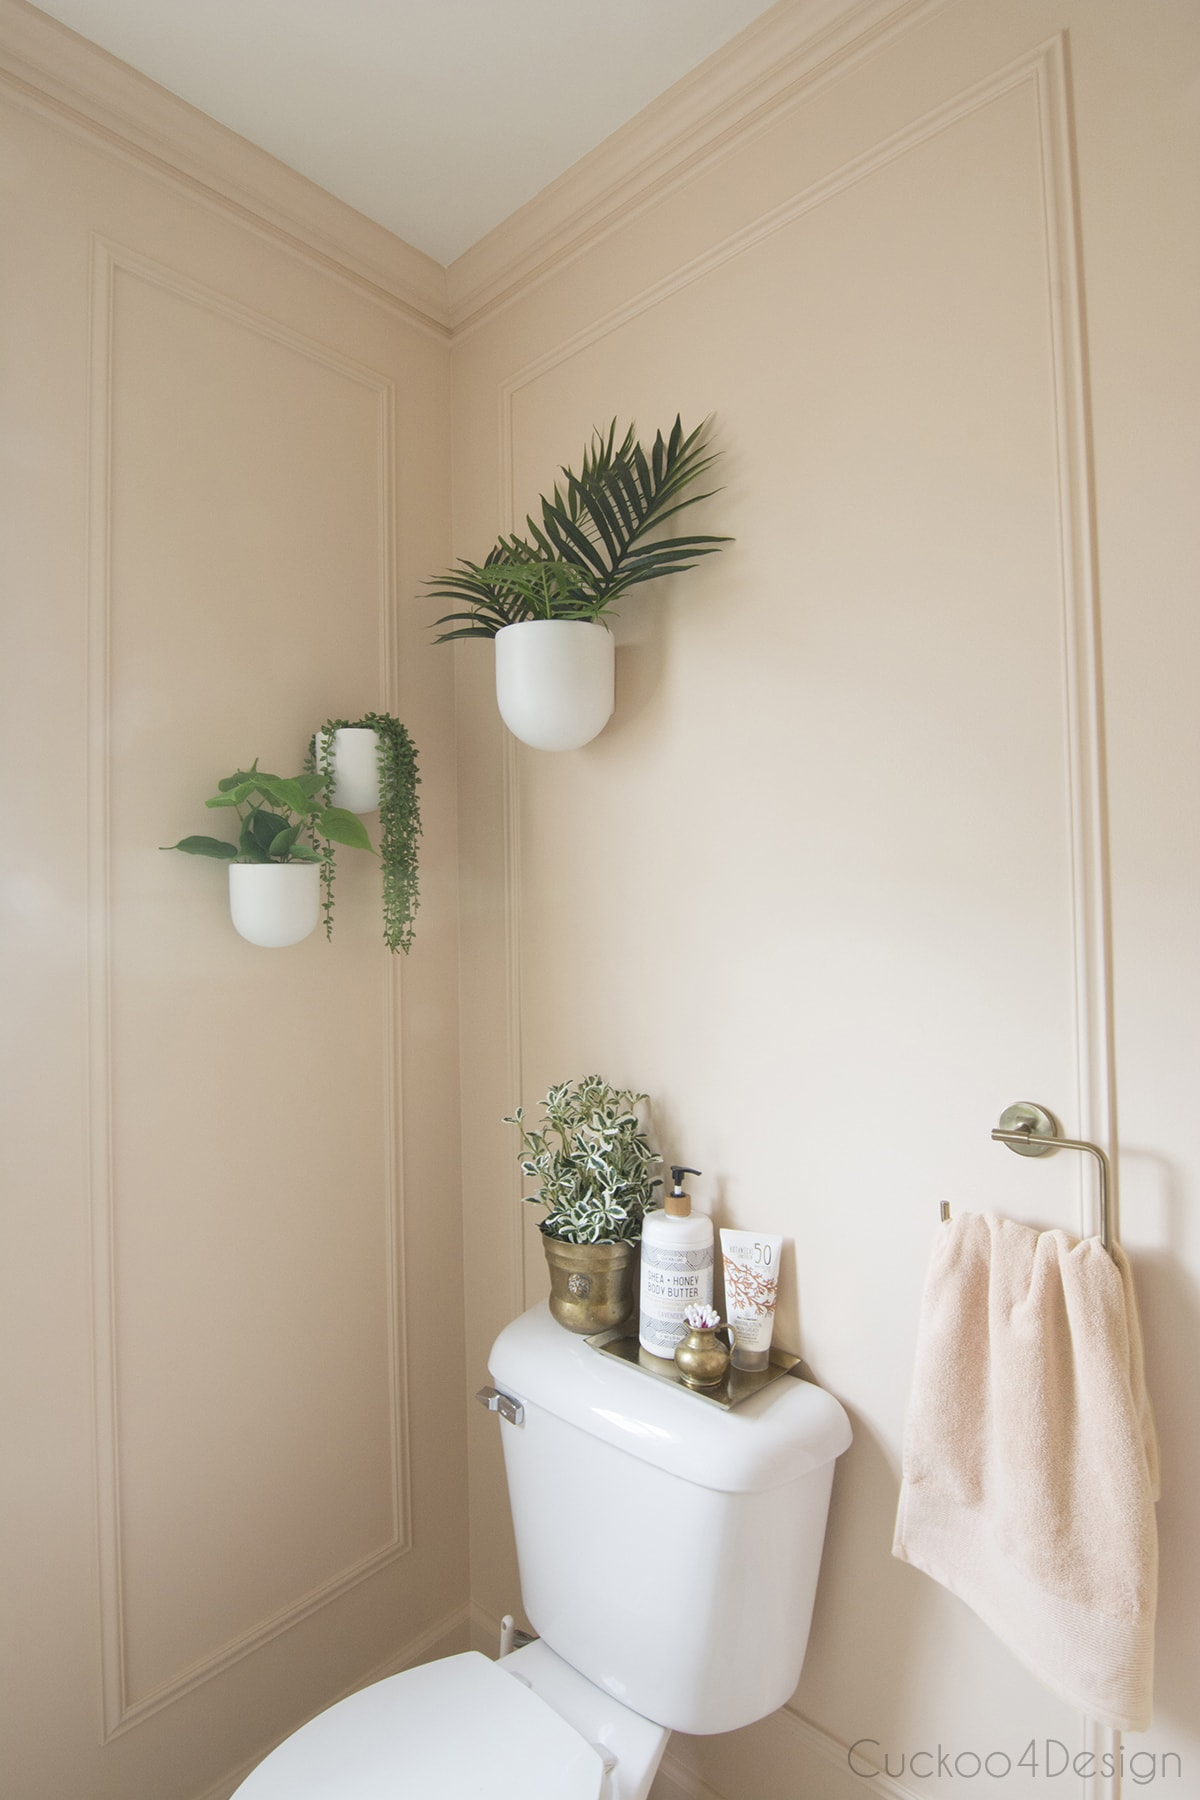 wall planters above toilet in budget bathroom remodel